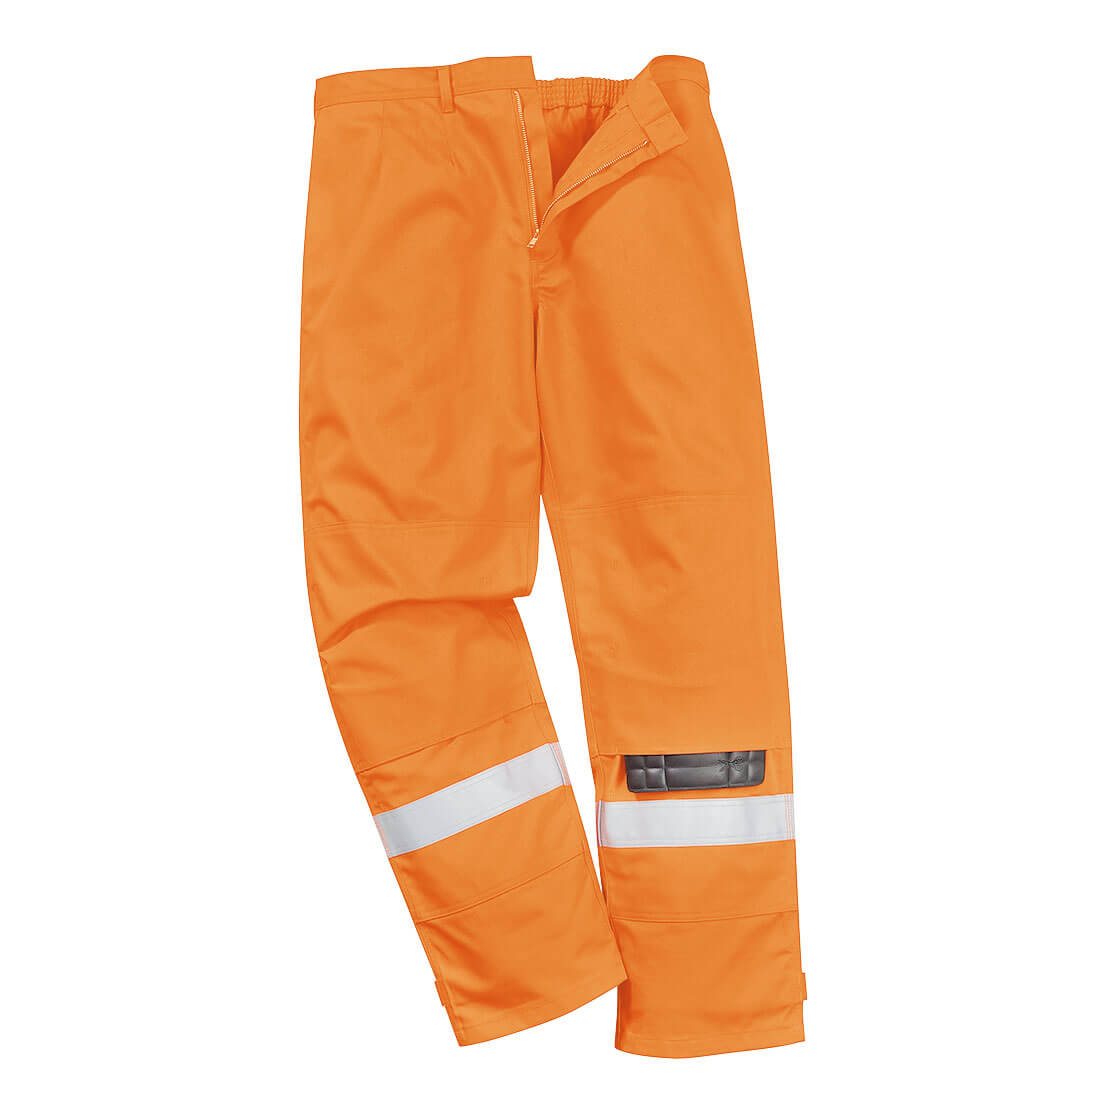 Image of Biz Flame Plus Mens Flame Resistant Trousers Orange Large 34""